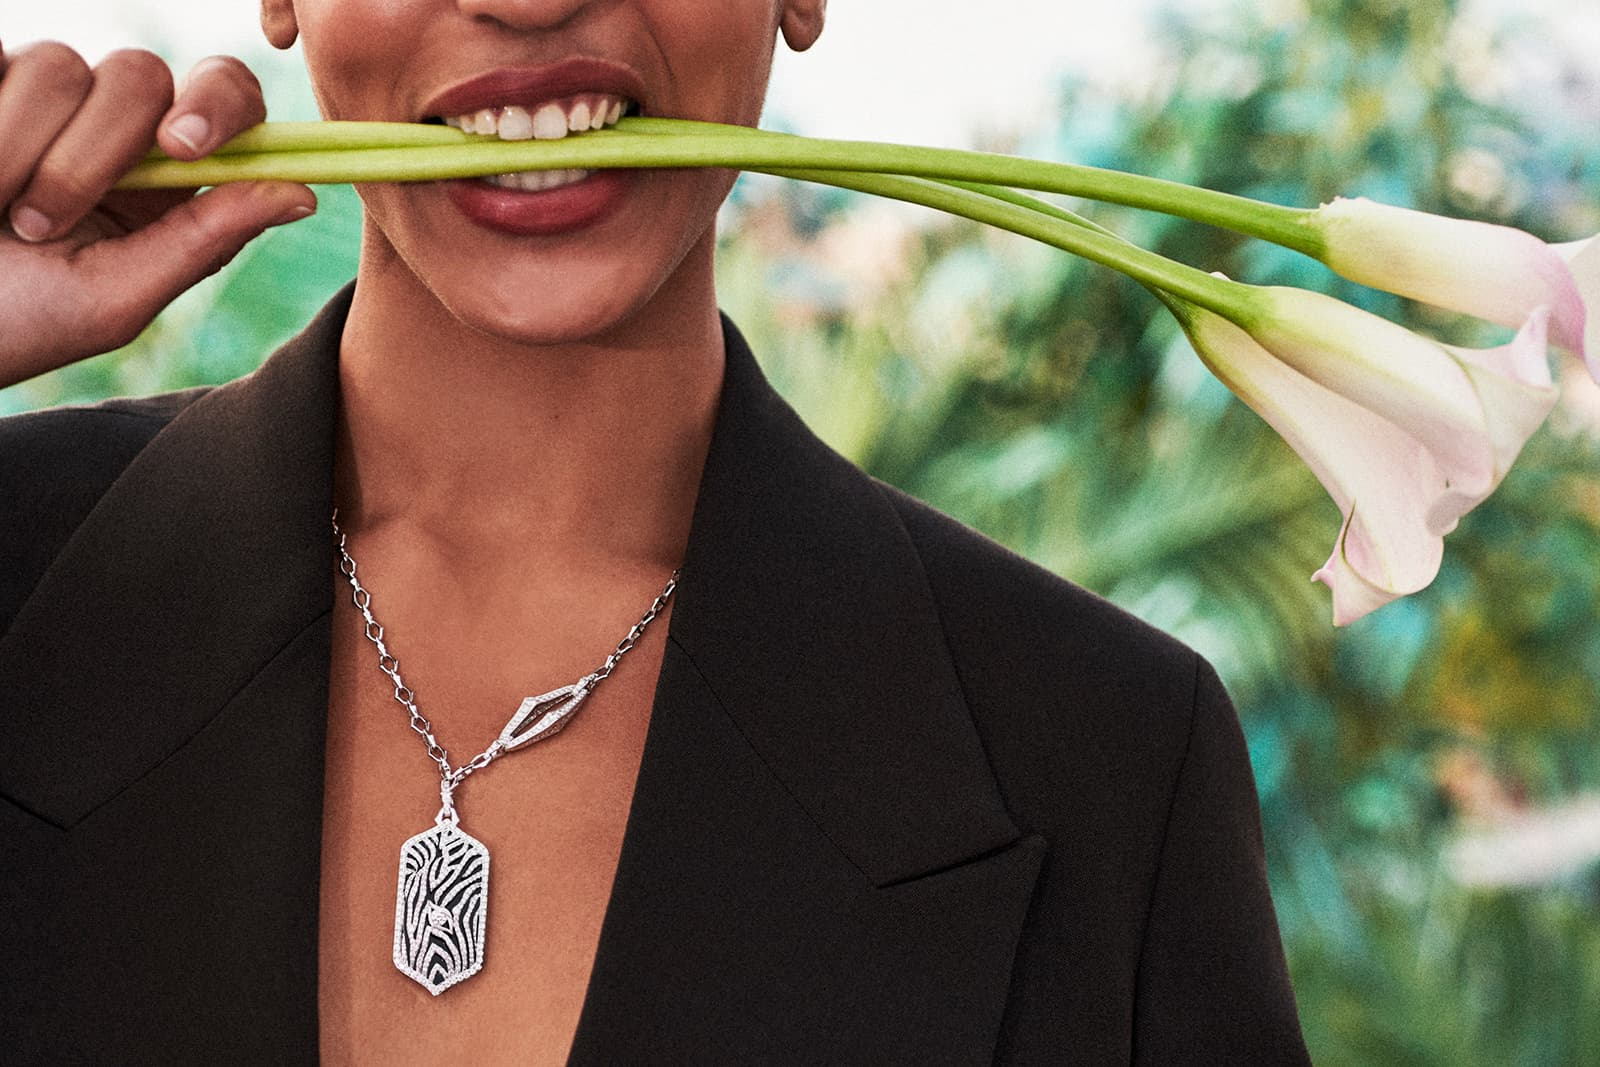 Model Indira Scott wears Sara Weinstock's zebra-inspired pendant